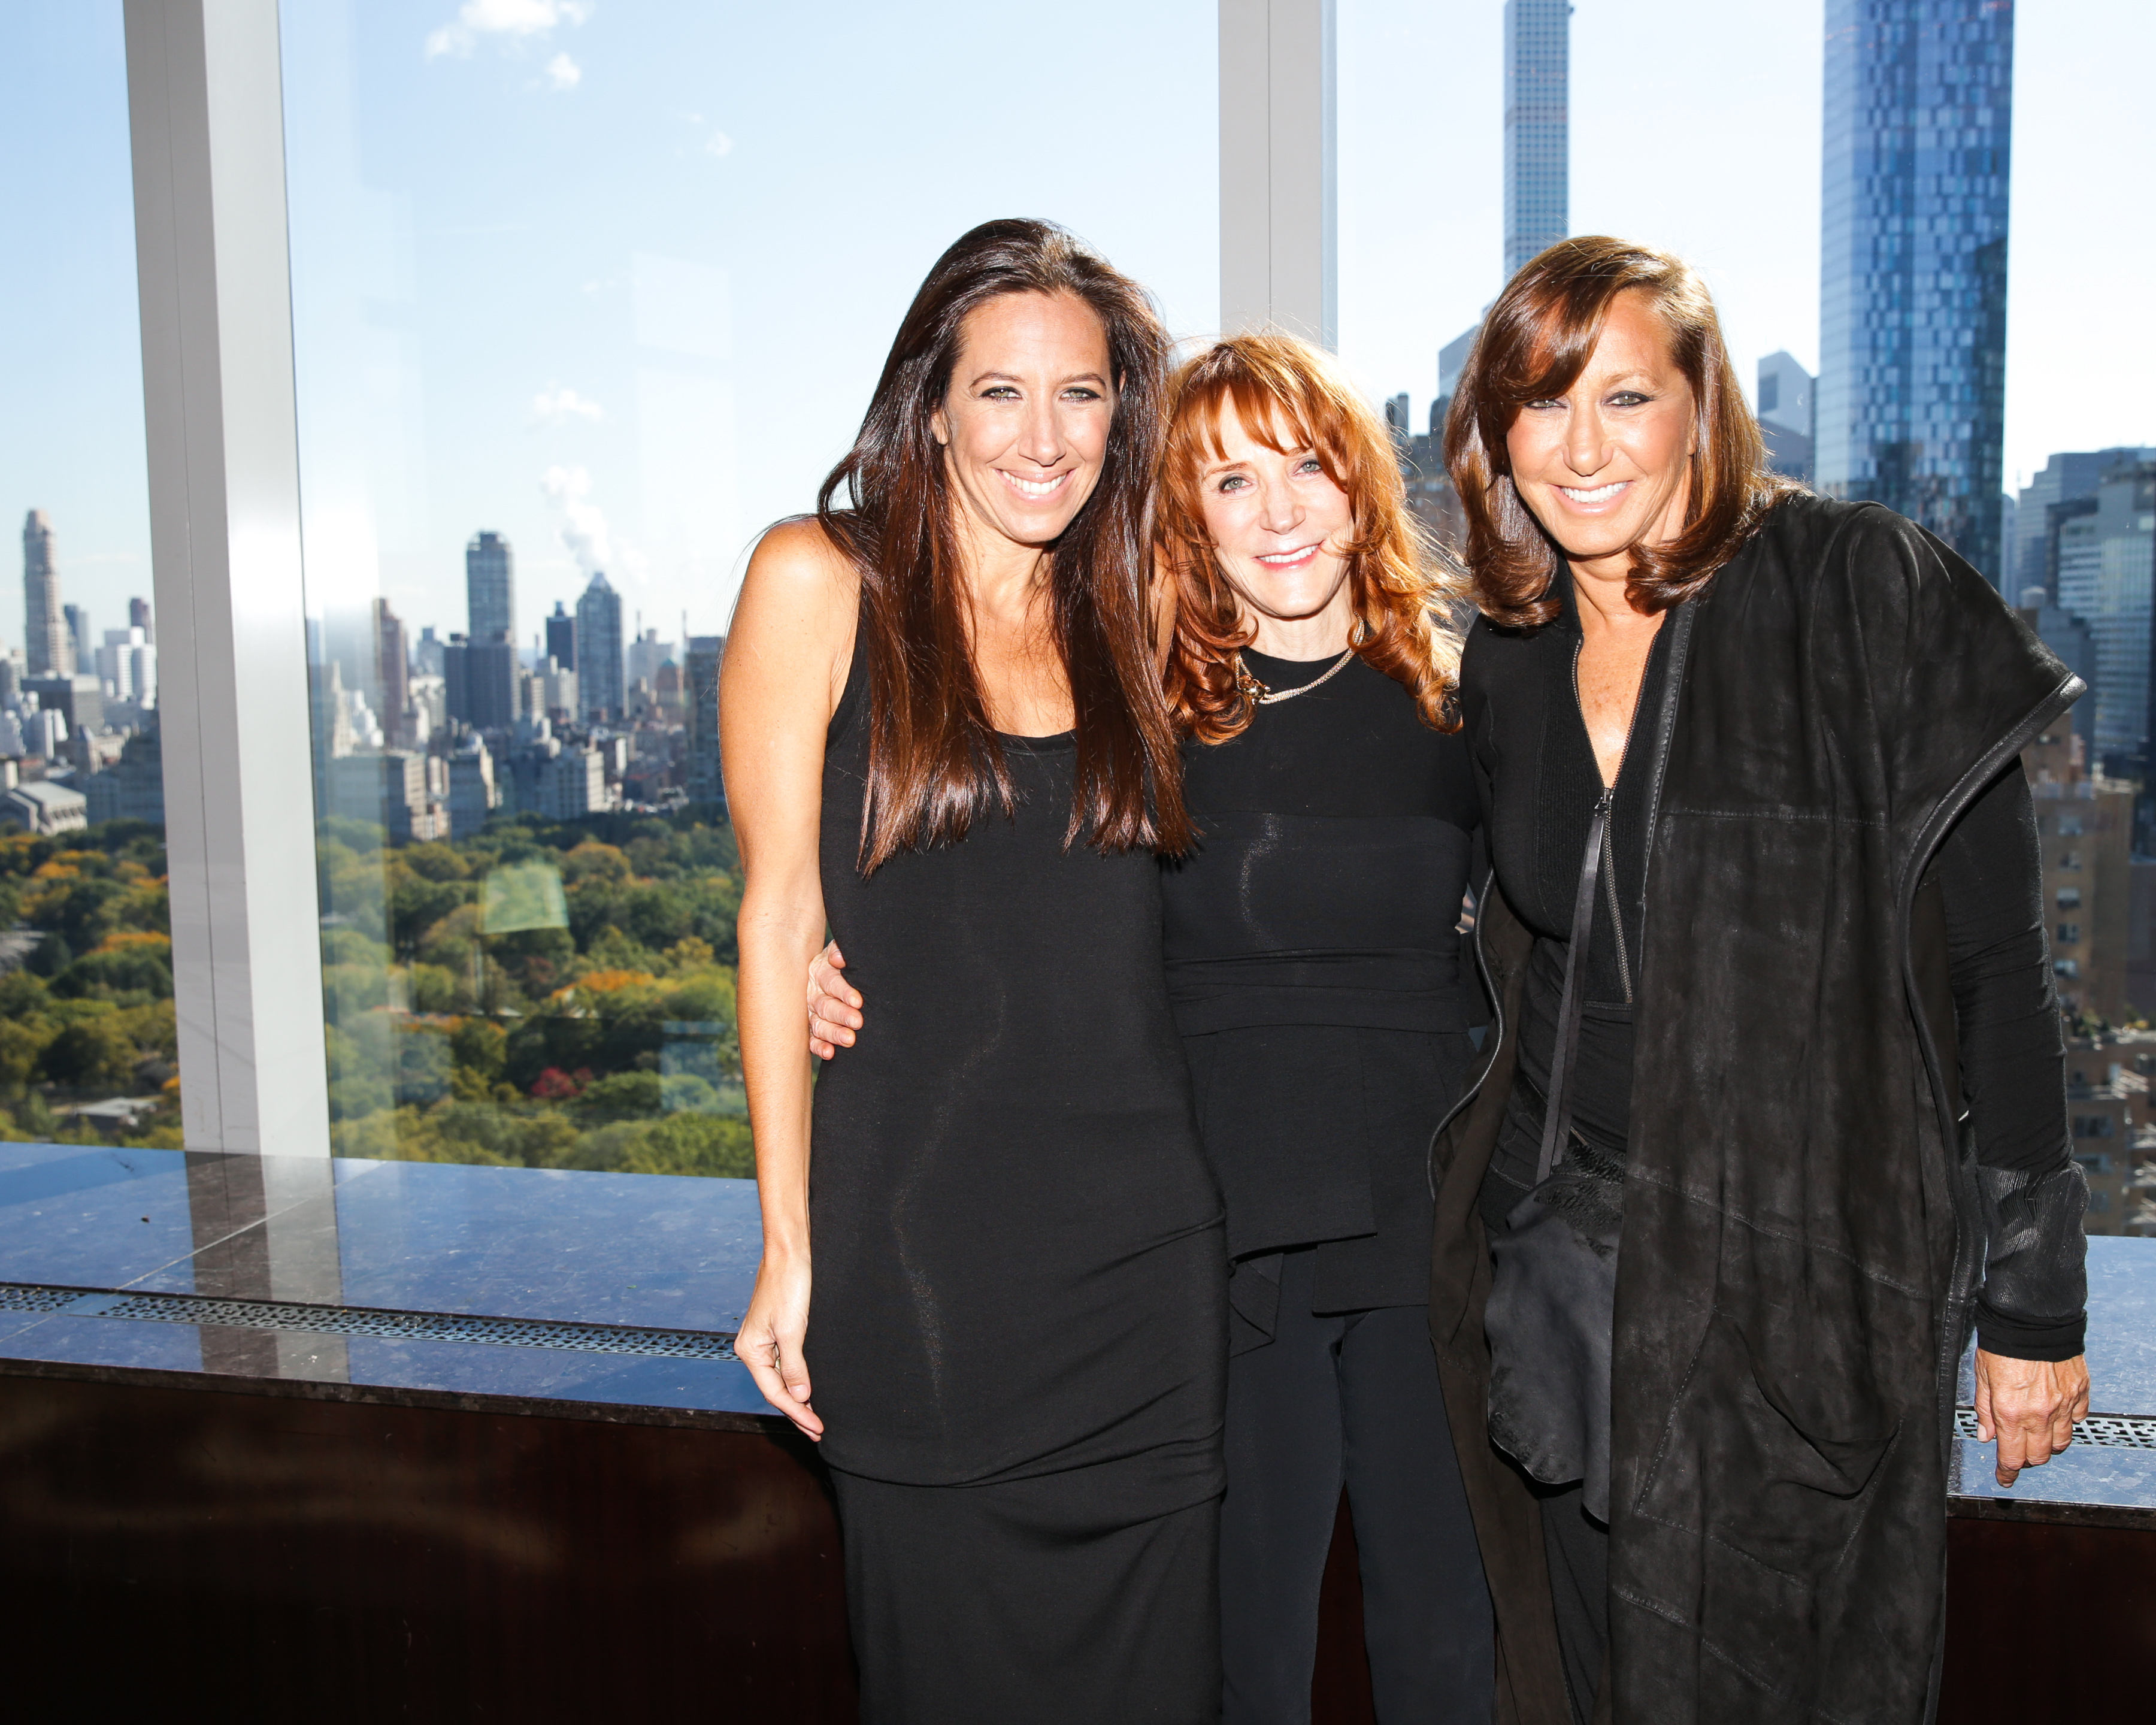 Watch - Cohen patti leaving donna karan video